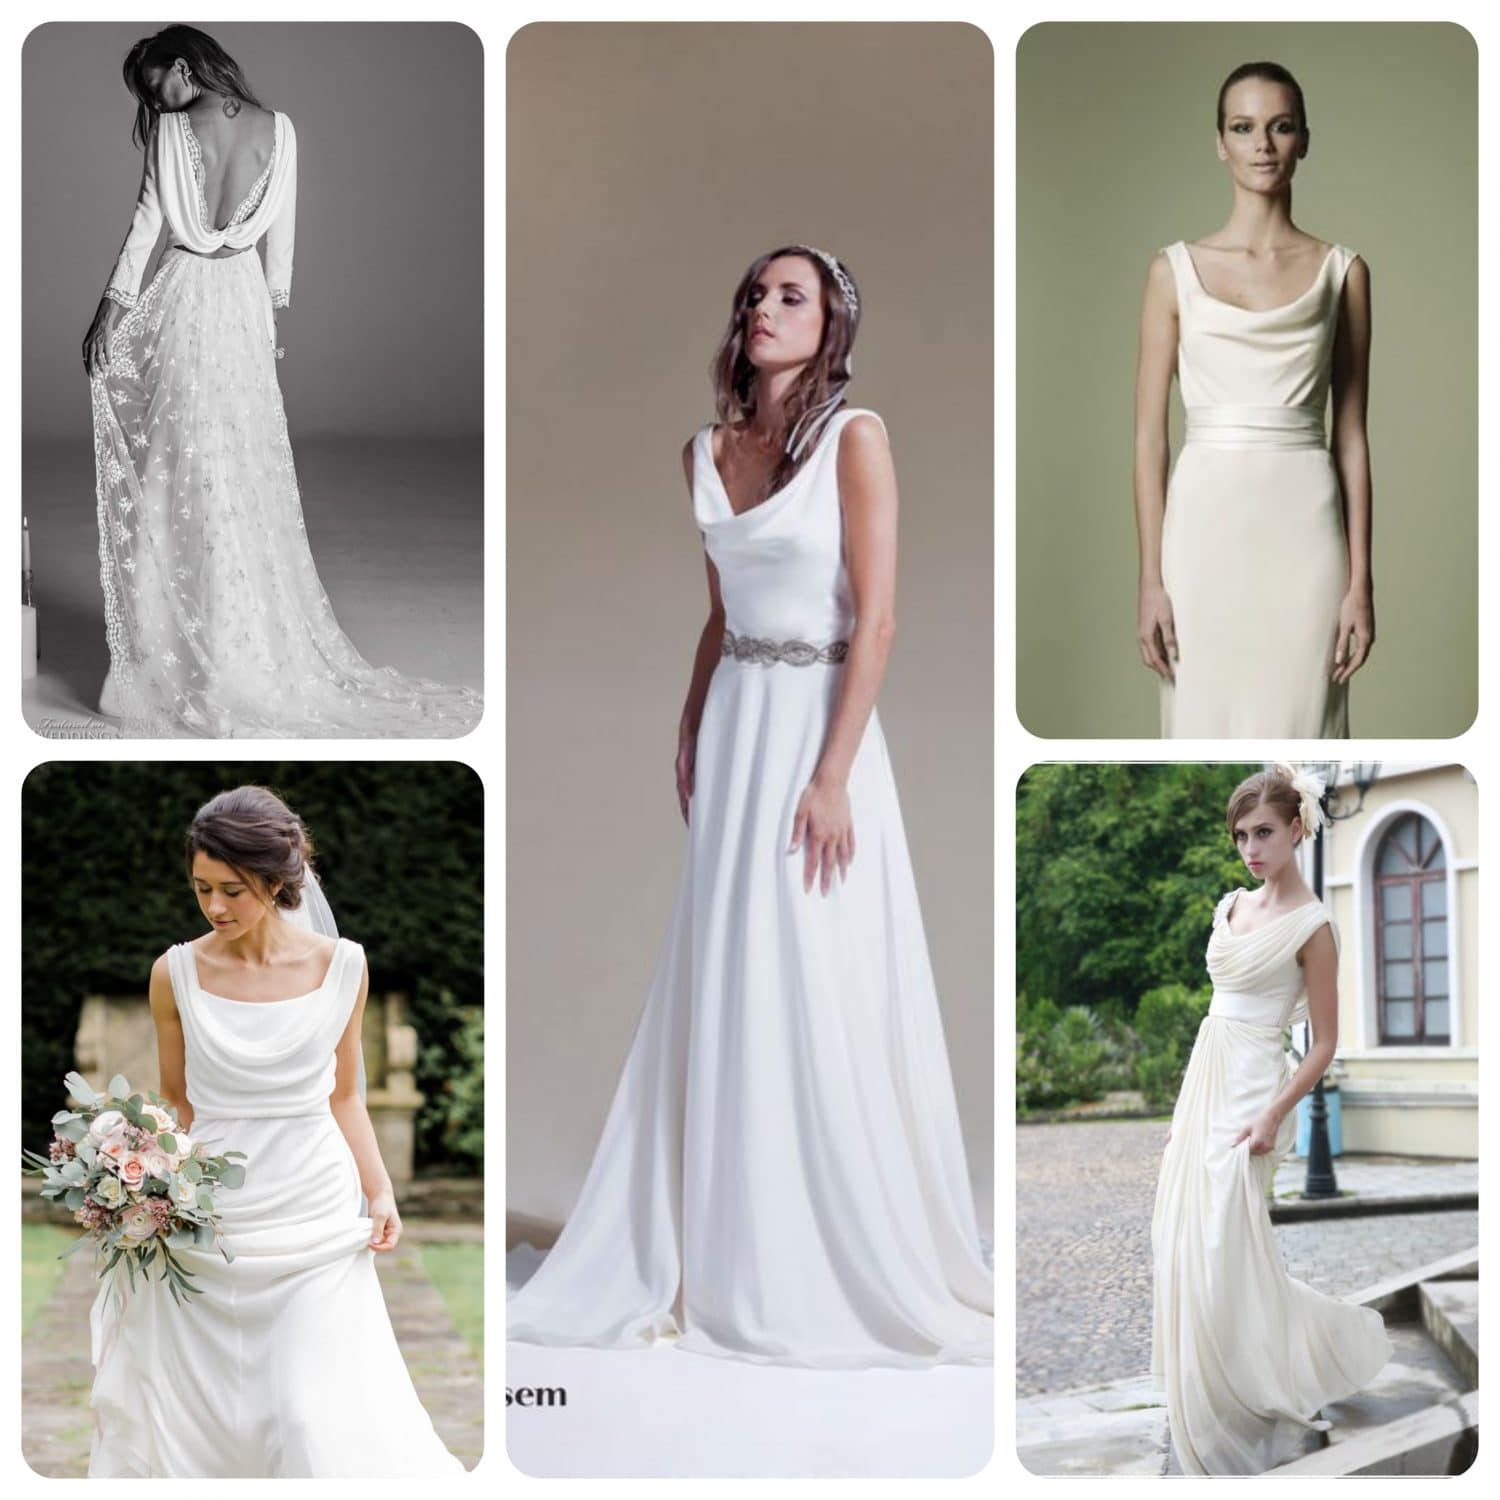 Wedding Gown Styles Guide: Capesthorne Hall And Weddings